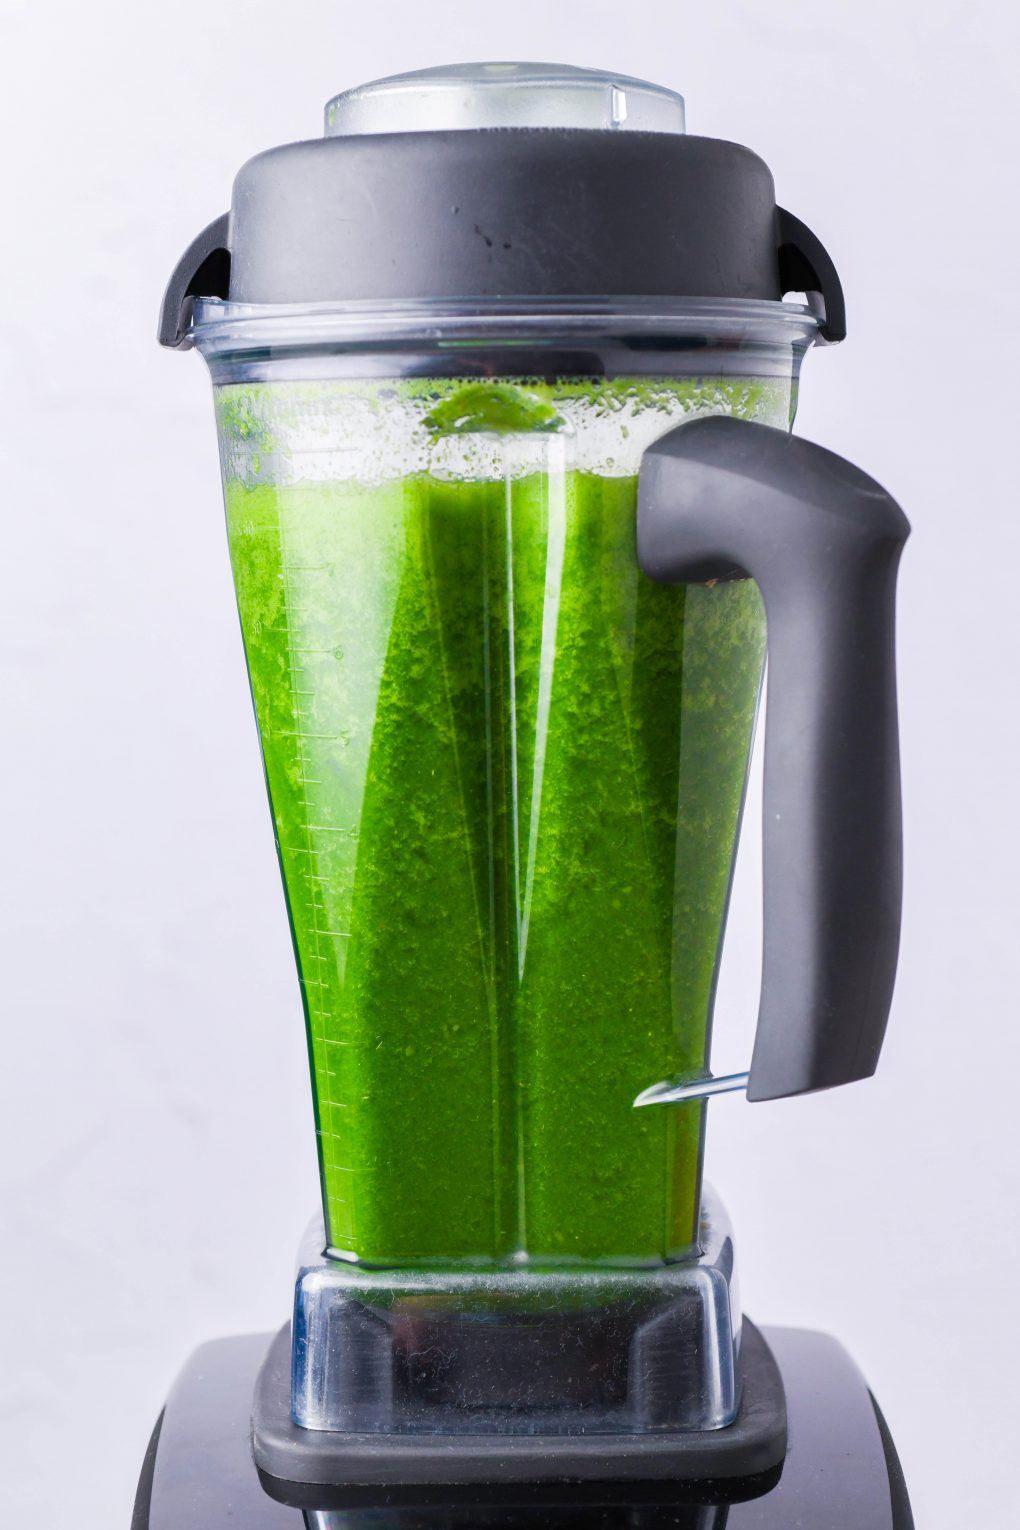 Straight on shot of a bright green blended green juice in a Vitamix blender. In front of a white background.